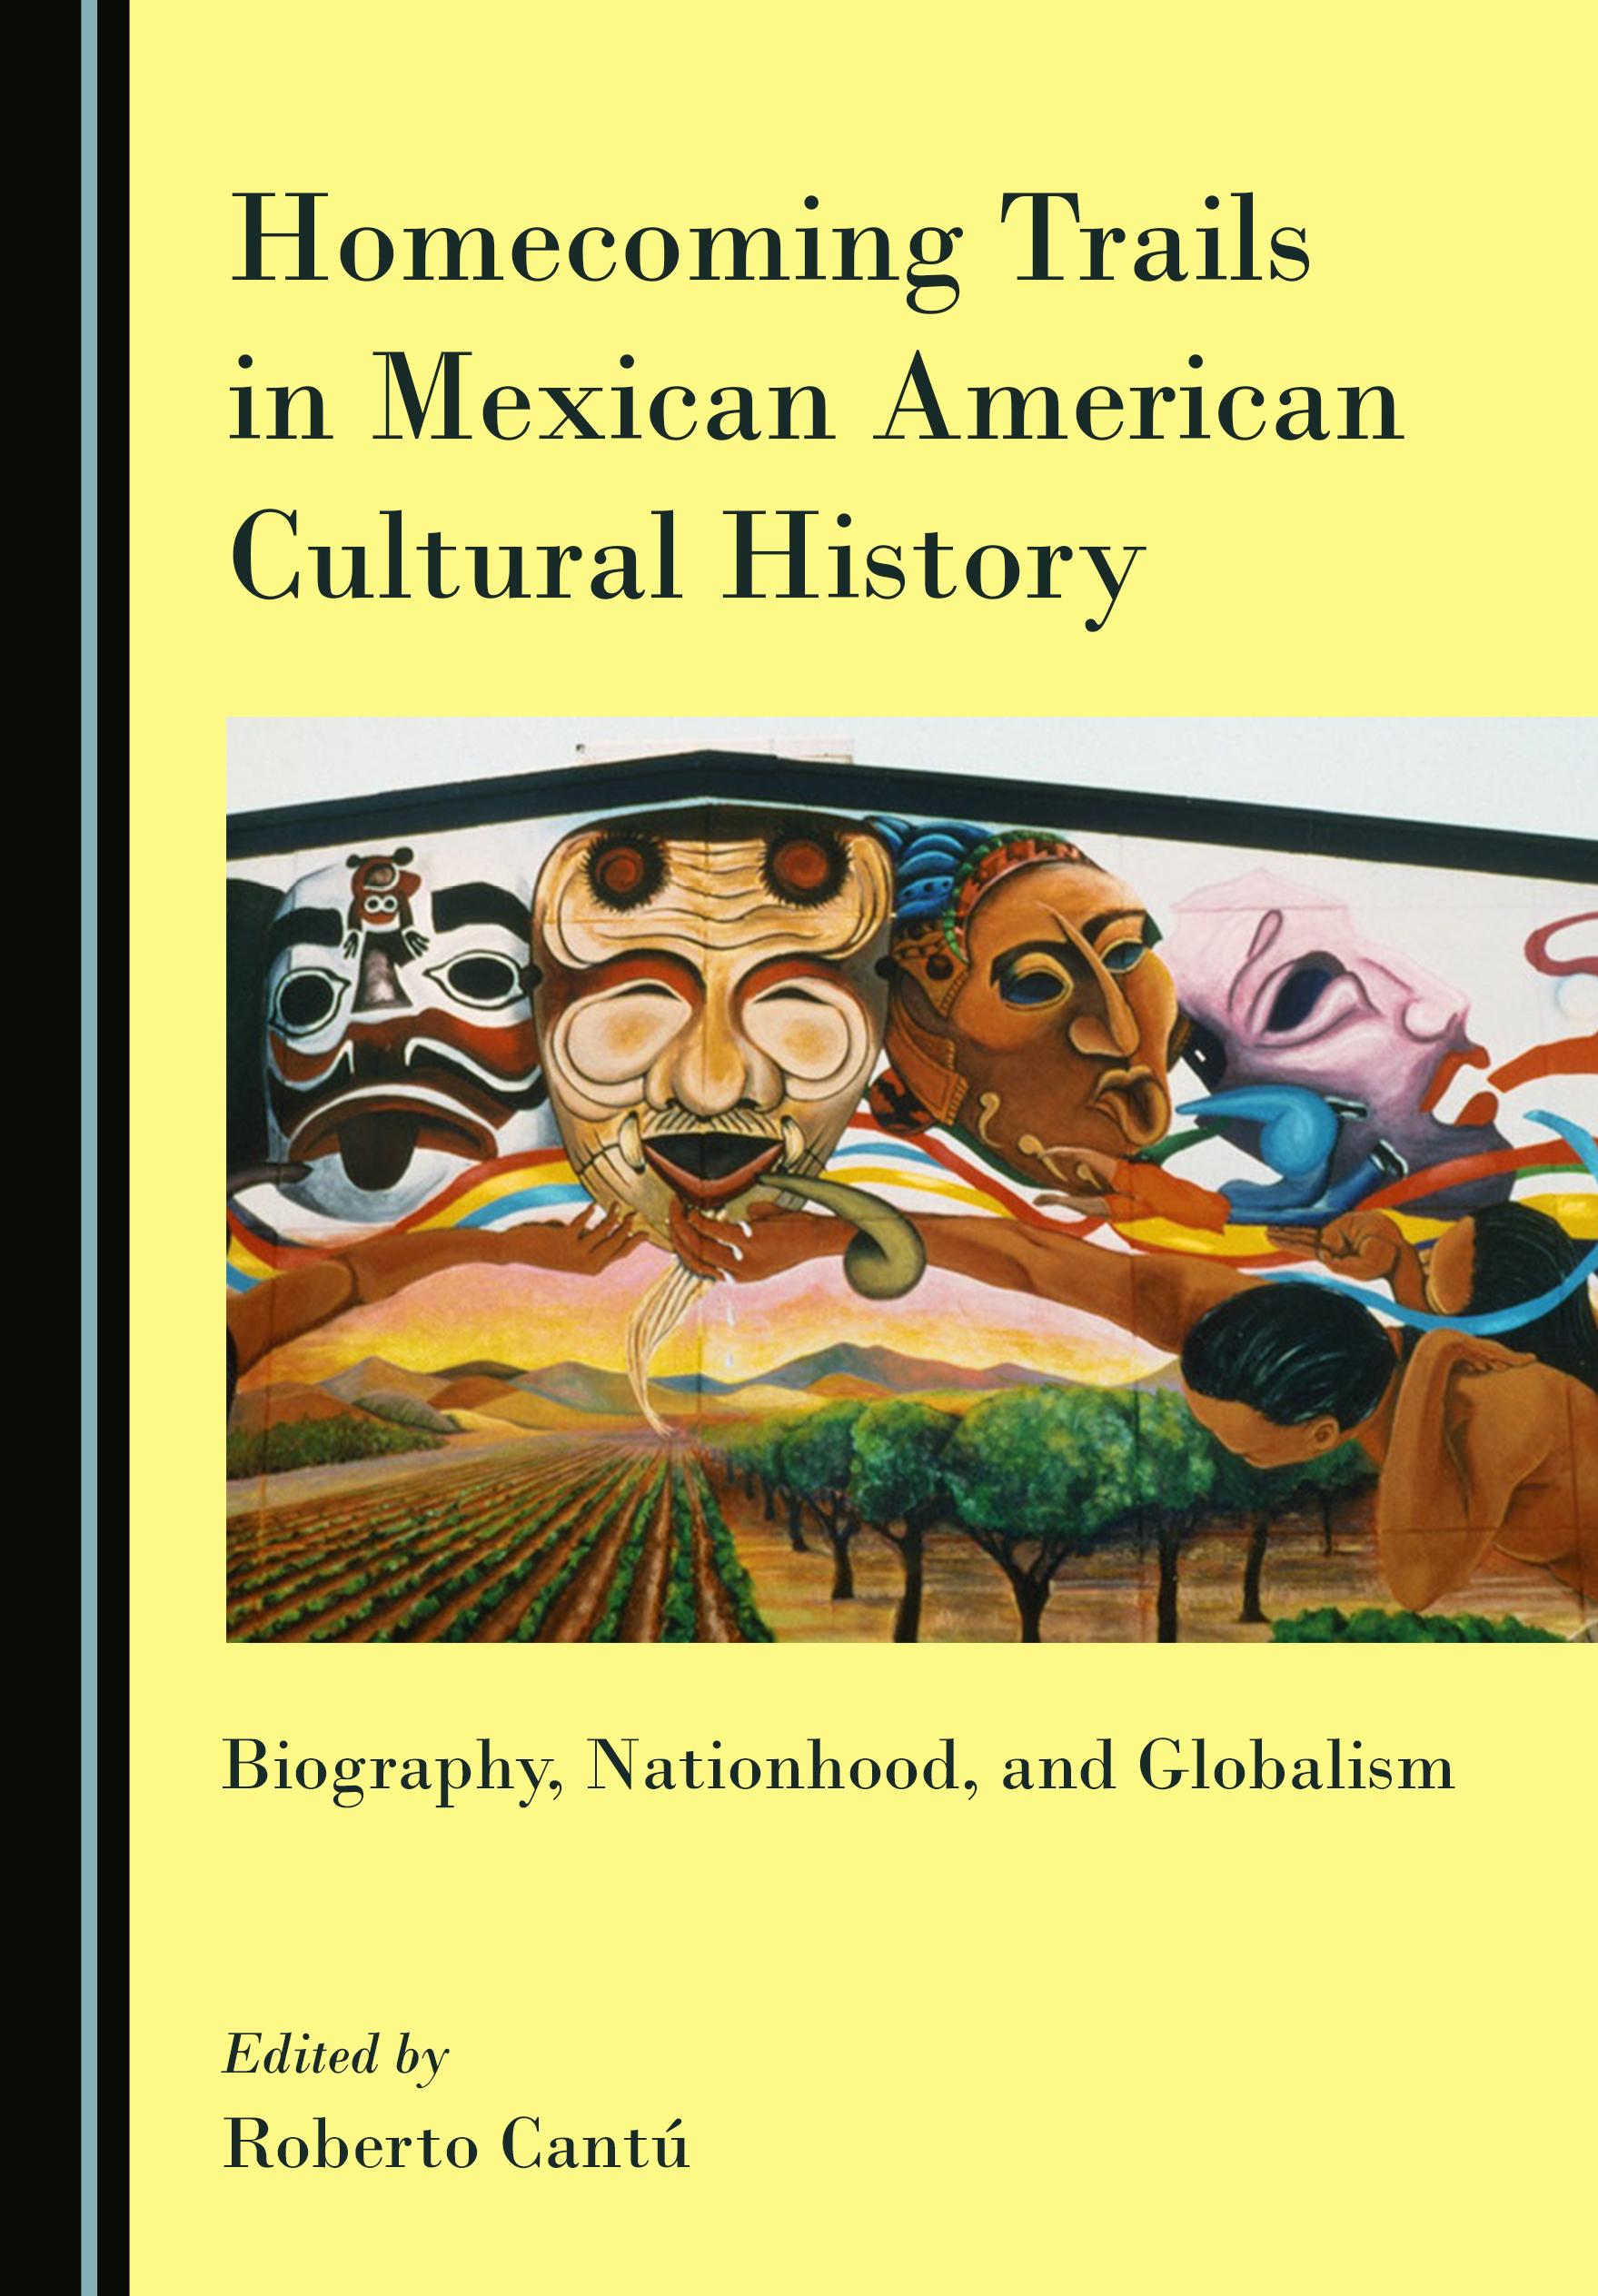 Homecoming Trails in Mexican American Cultural History: Biography, Nationhood, and Globalism